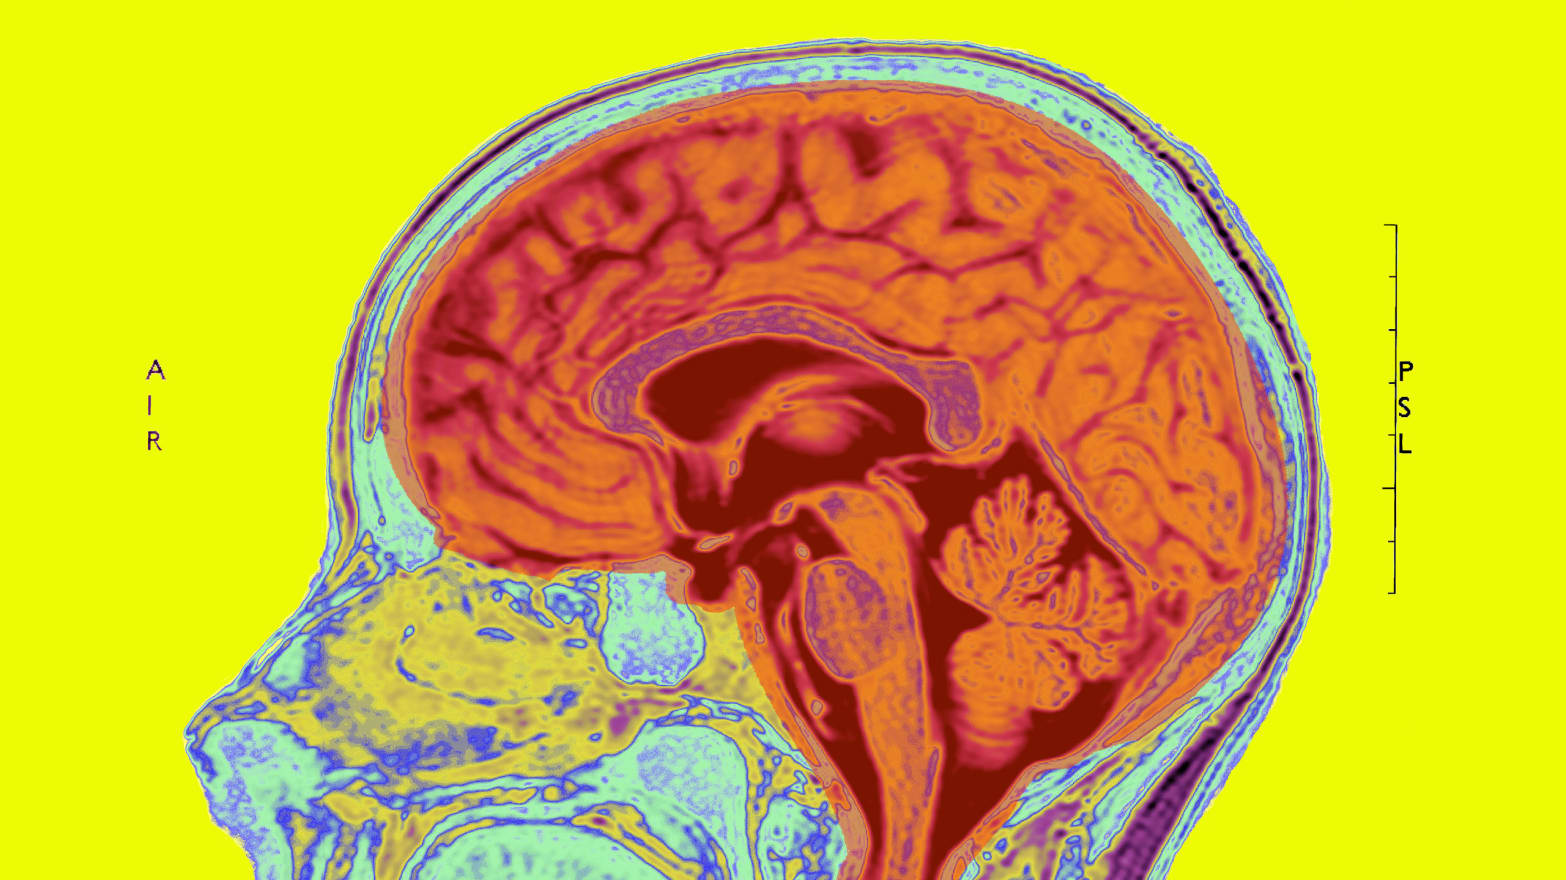 Brains Of People With Autism Spectrum >> Early Brain Injury Might Be The Root Of Autism